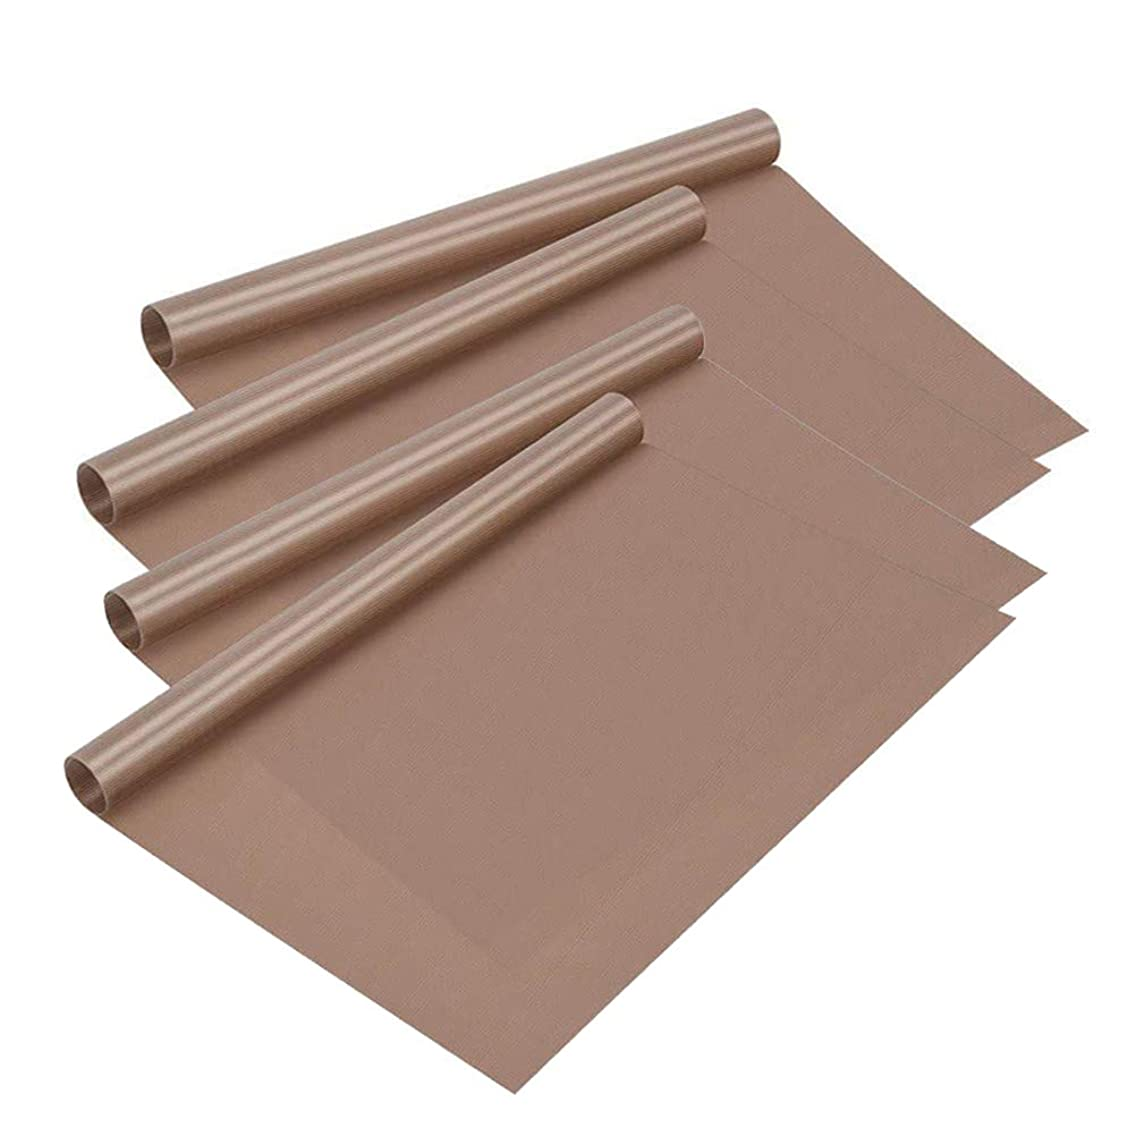 4 Pack 15 x 24 Inch PTFE Heat Resistant Craft Mat Sheet, KEWAYO Non Stick Heat Press Transfer Sheet